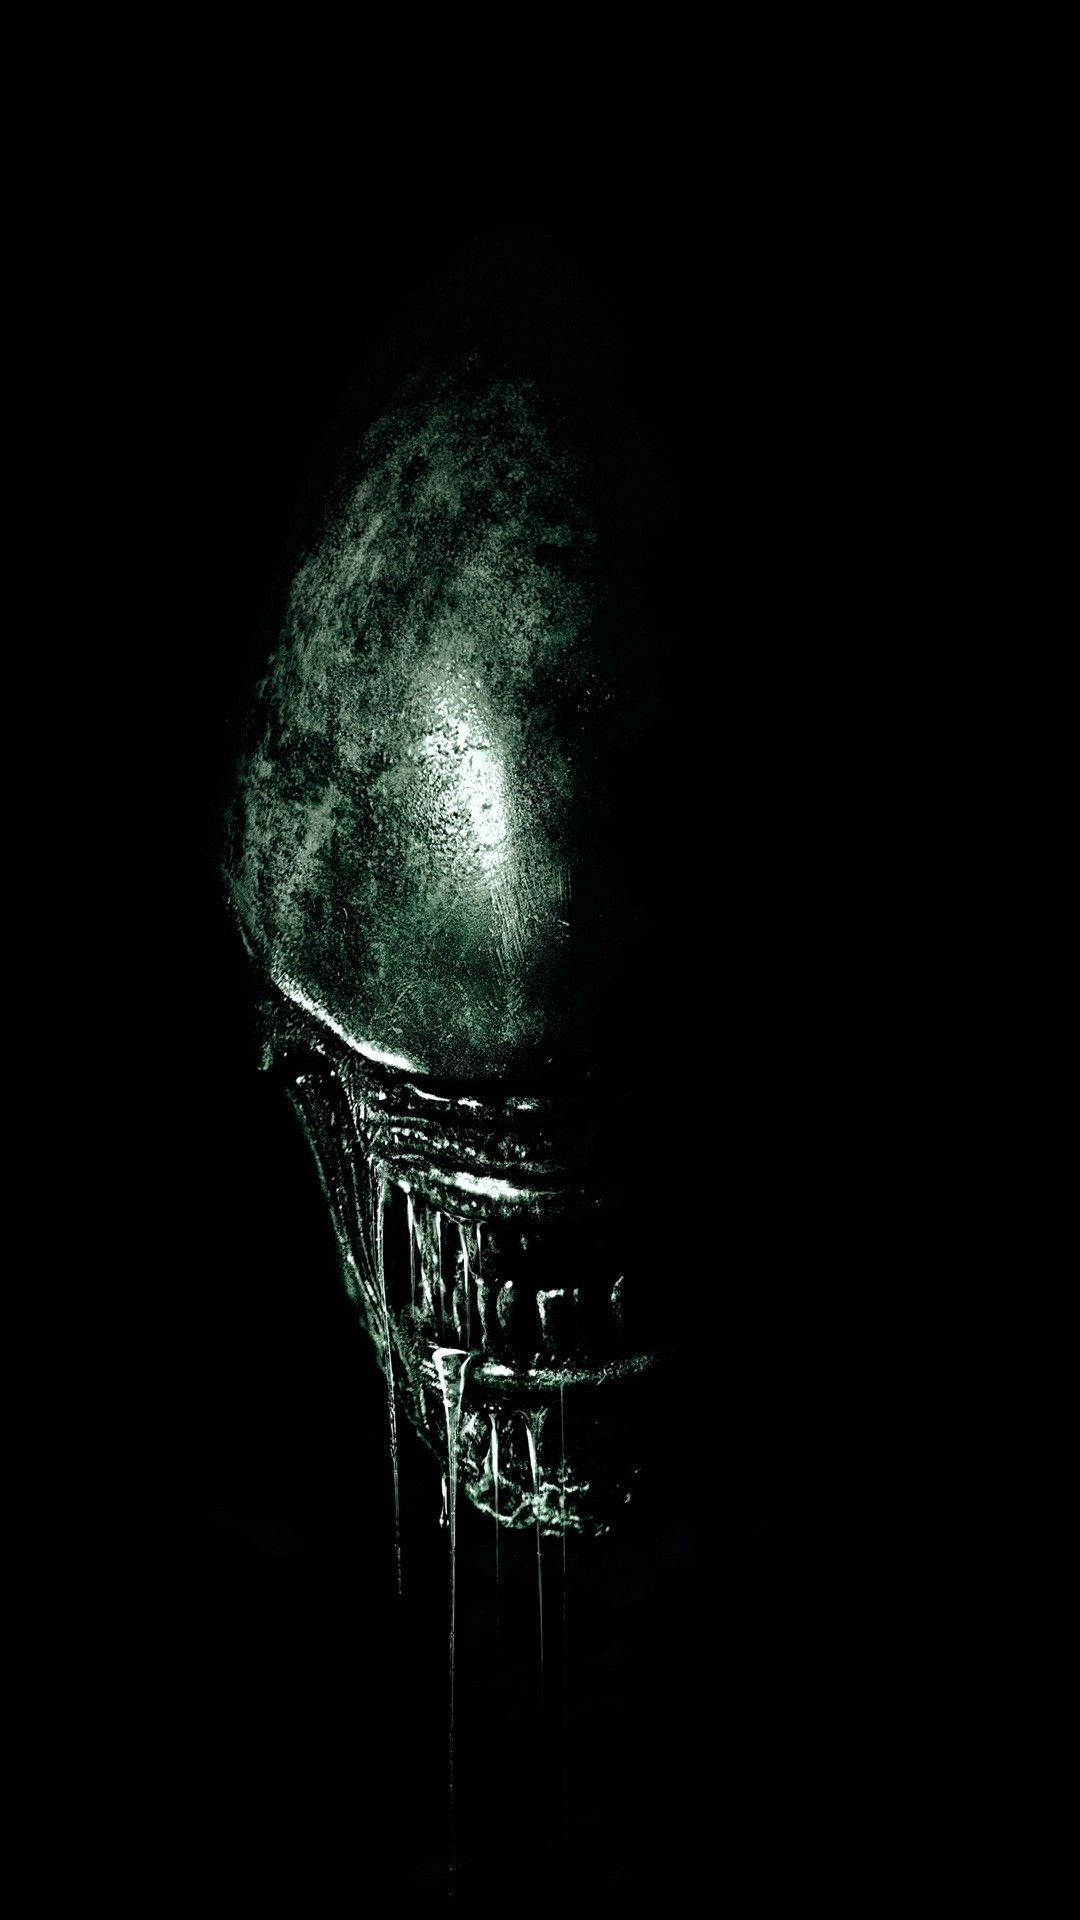 Dark 4k Wallpaper Android Download In 2020 Aliens Movie Art Alien Artwork Giger Alien